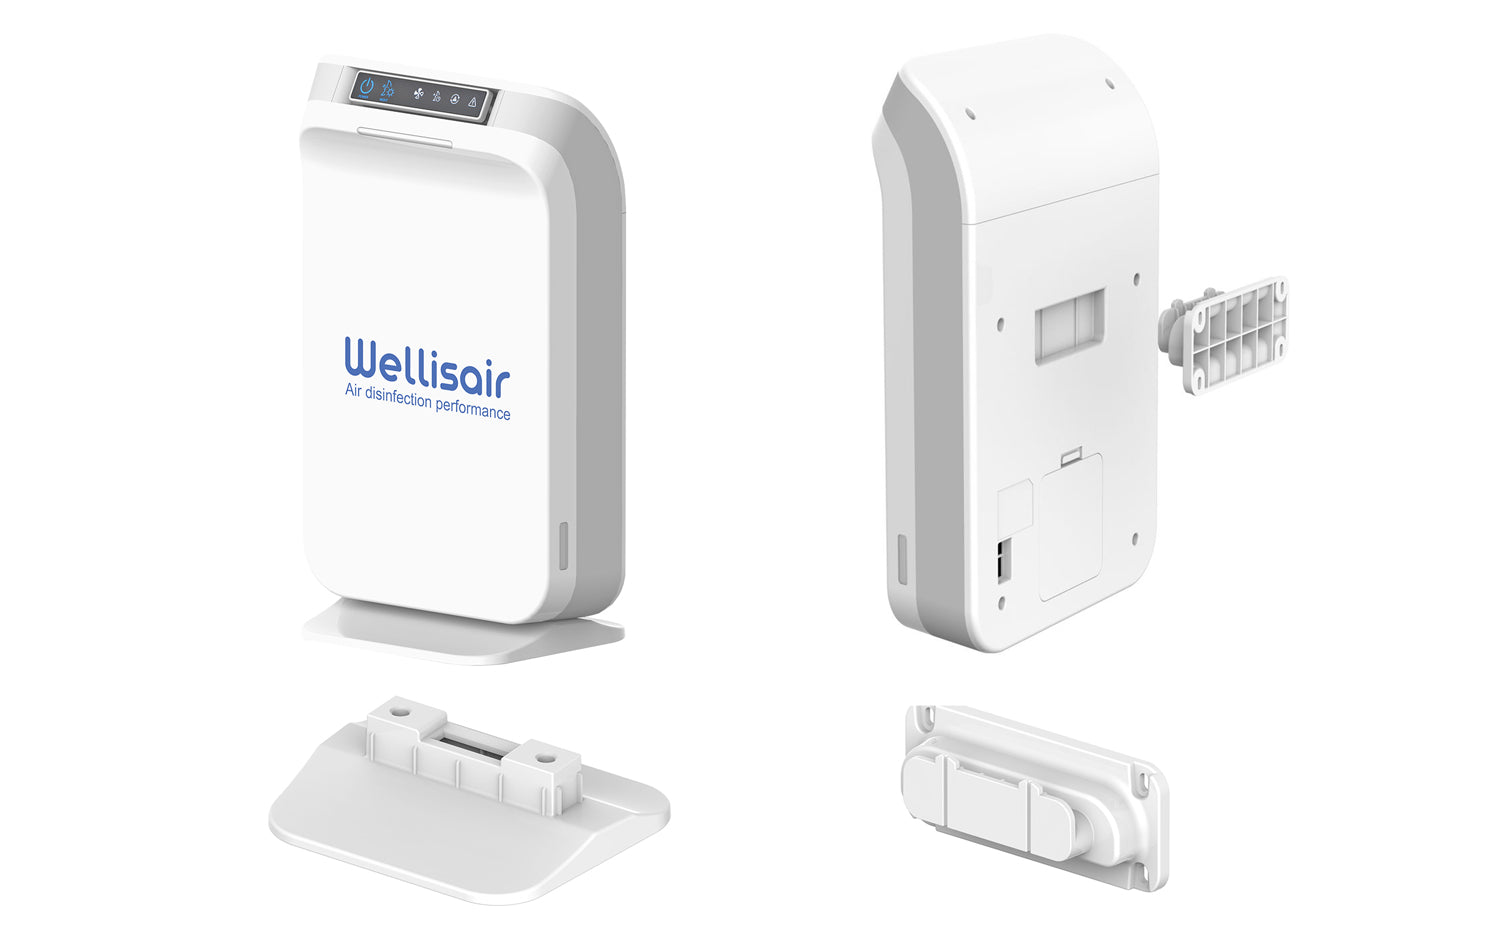 Wellisair - Air and Surfaces Purifier and Disinfection